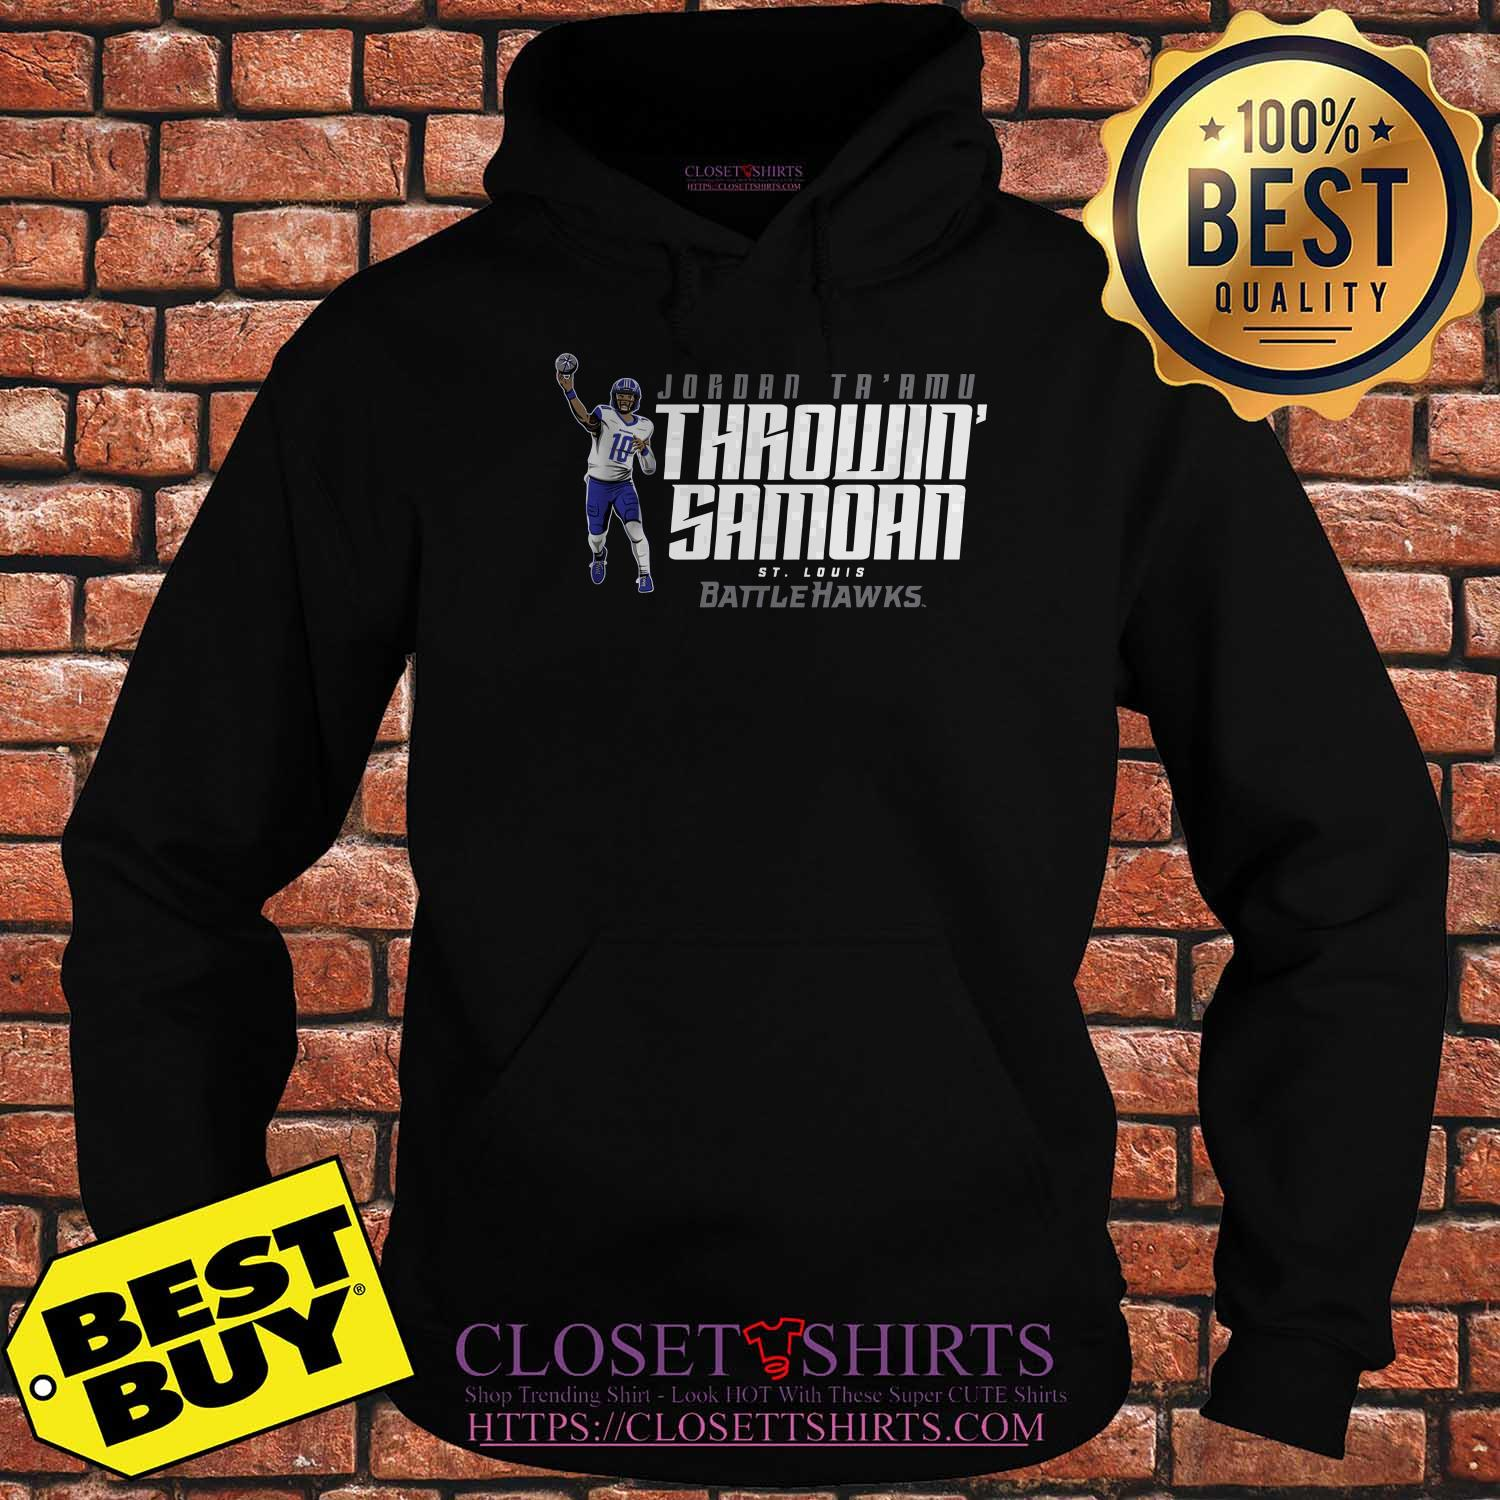 Jordan Ta'amu Throwin Samoan St.louis Battlehawks Hoodies